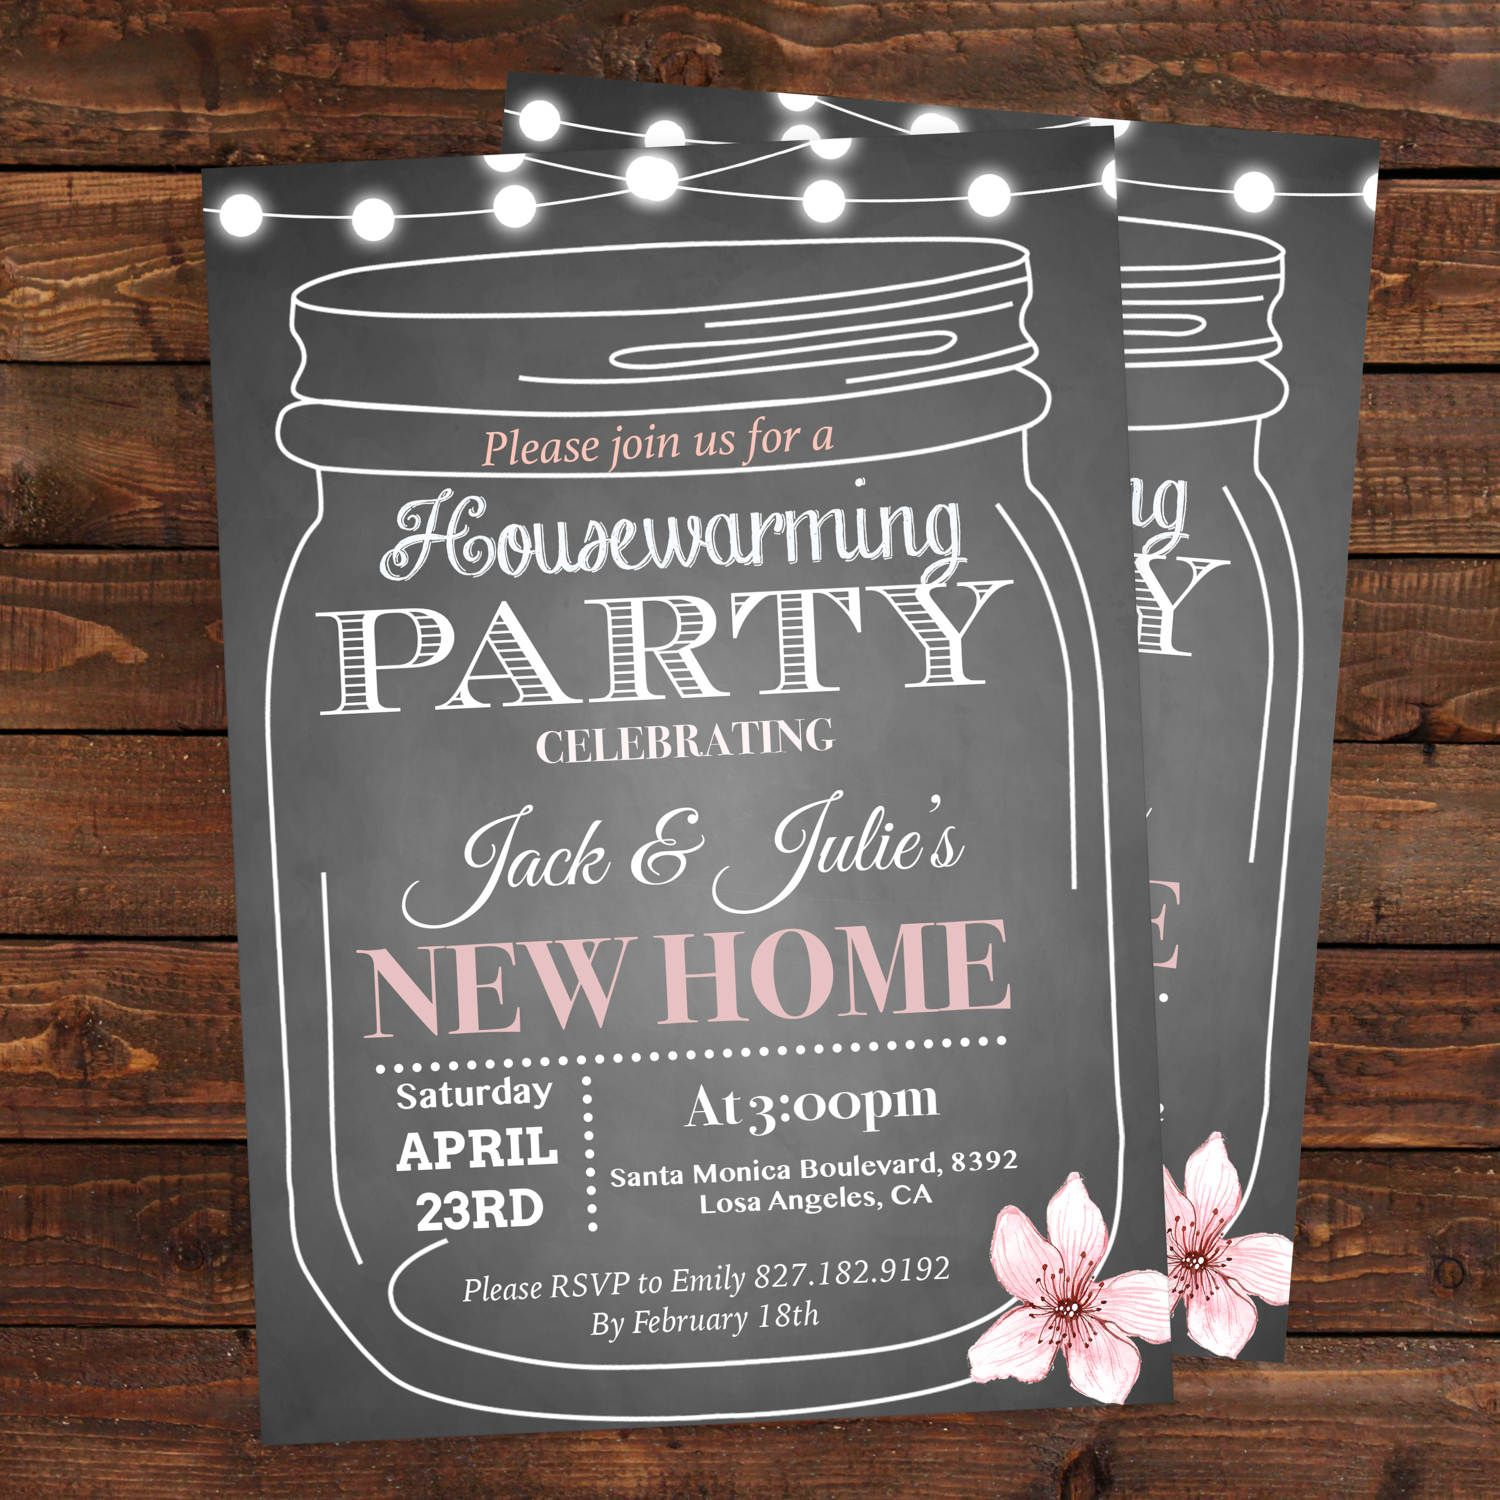 Housewarming party invitations template - Housewarming bbq party ...